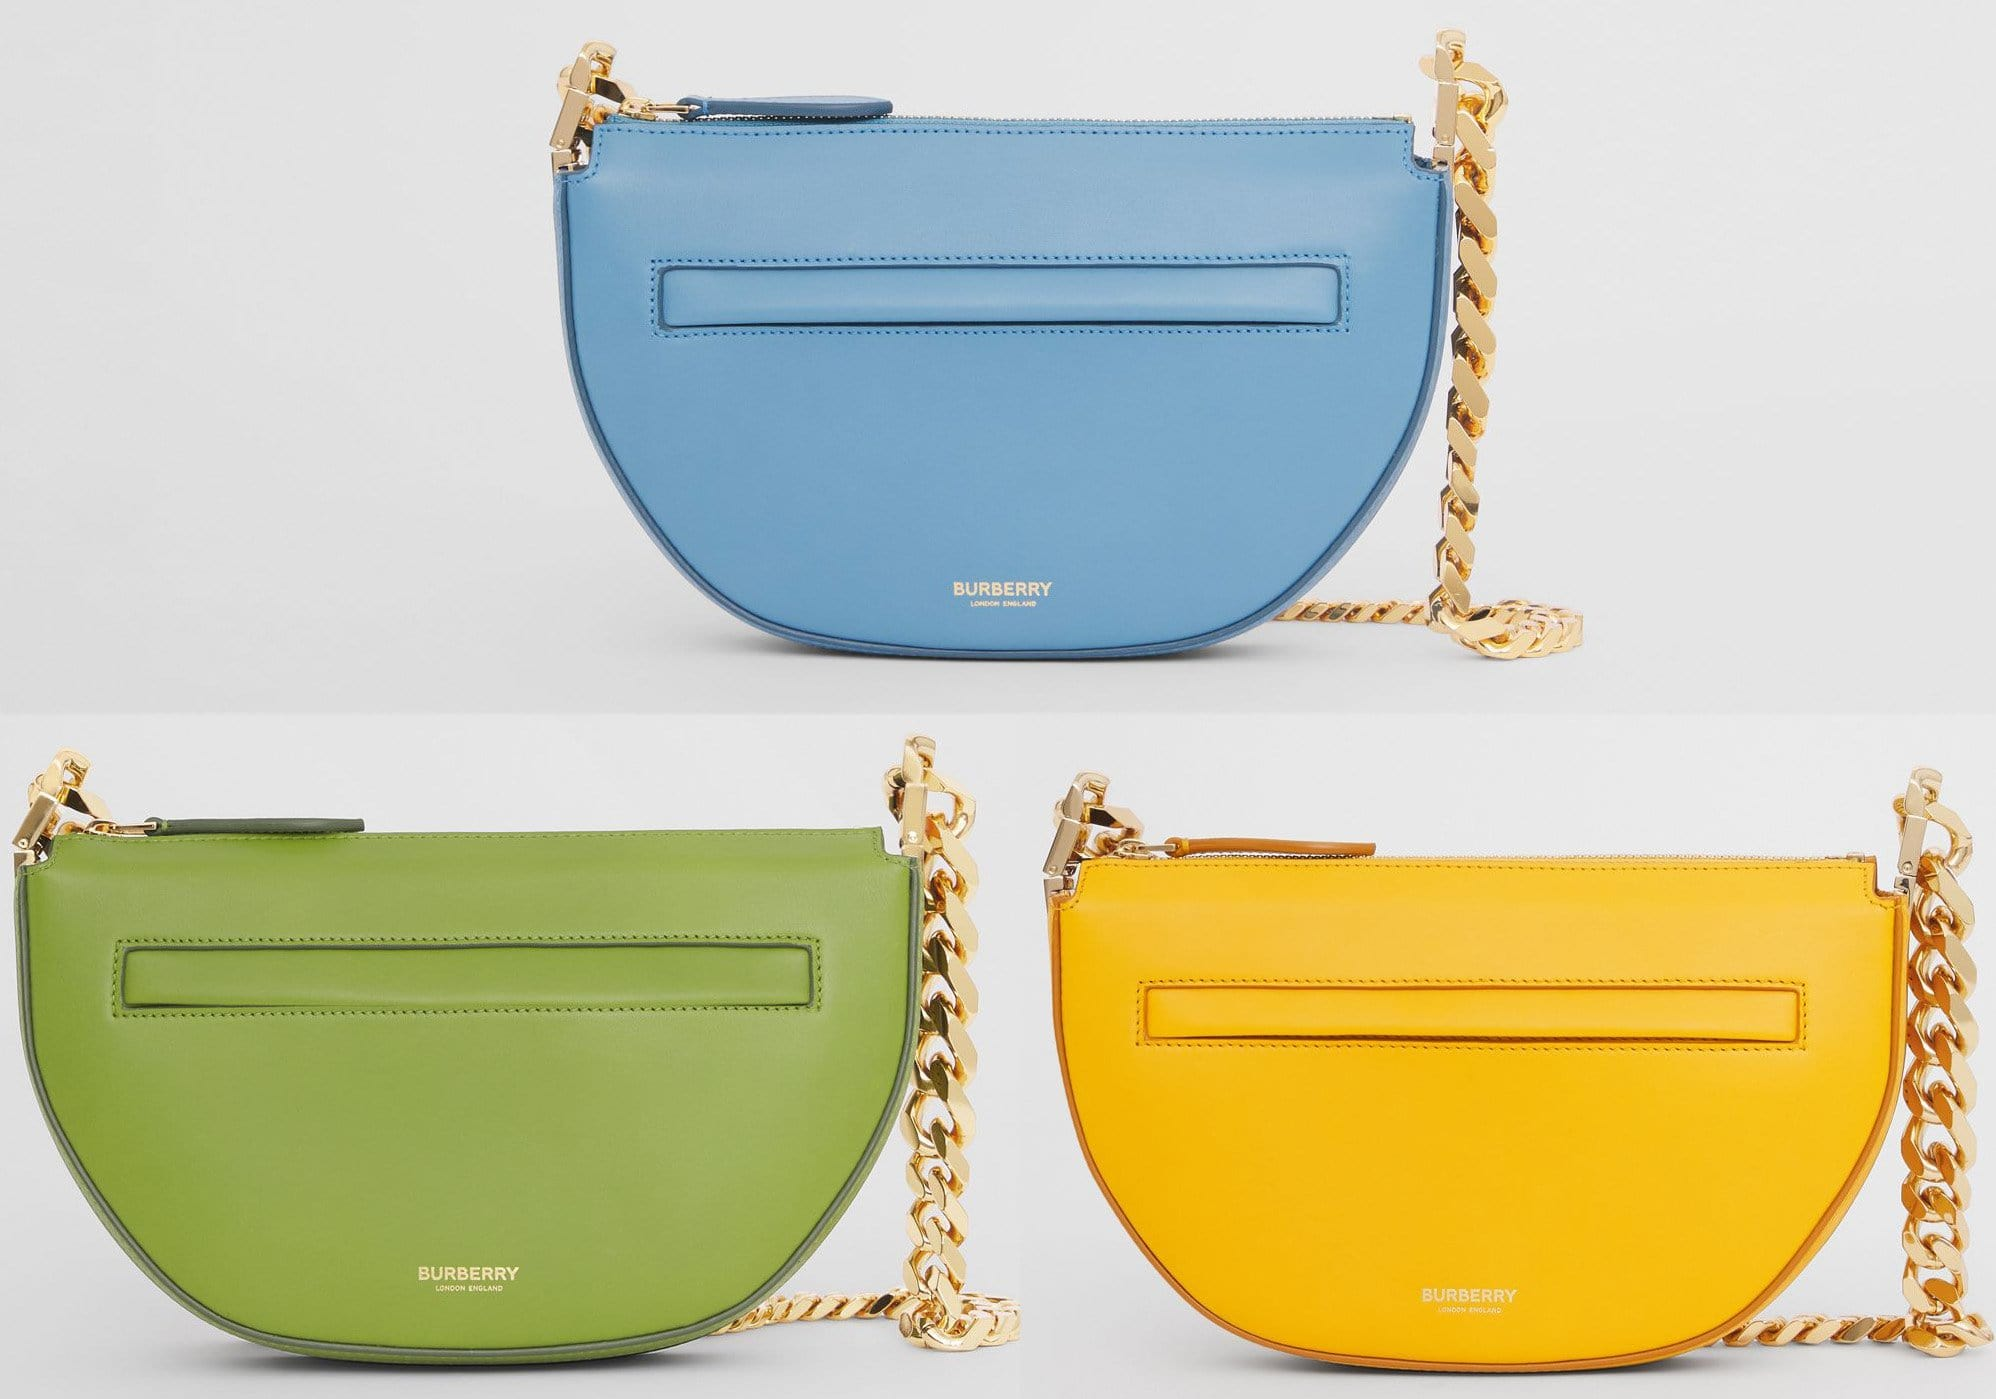 The Olympia features a slim, structured curved silhouette with a chunky chain shoulder strap